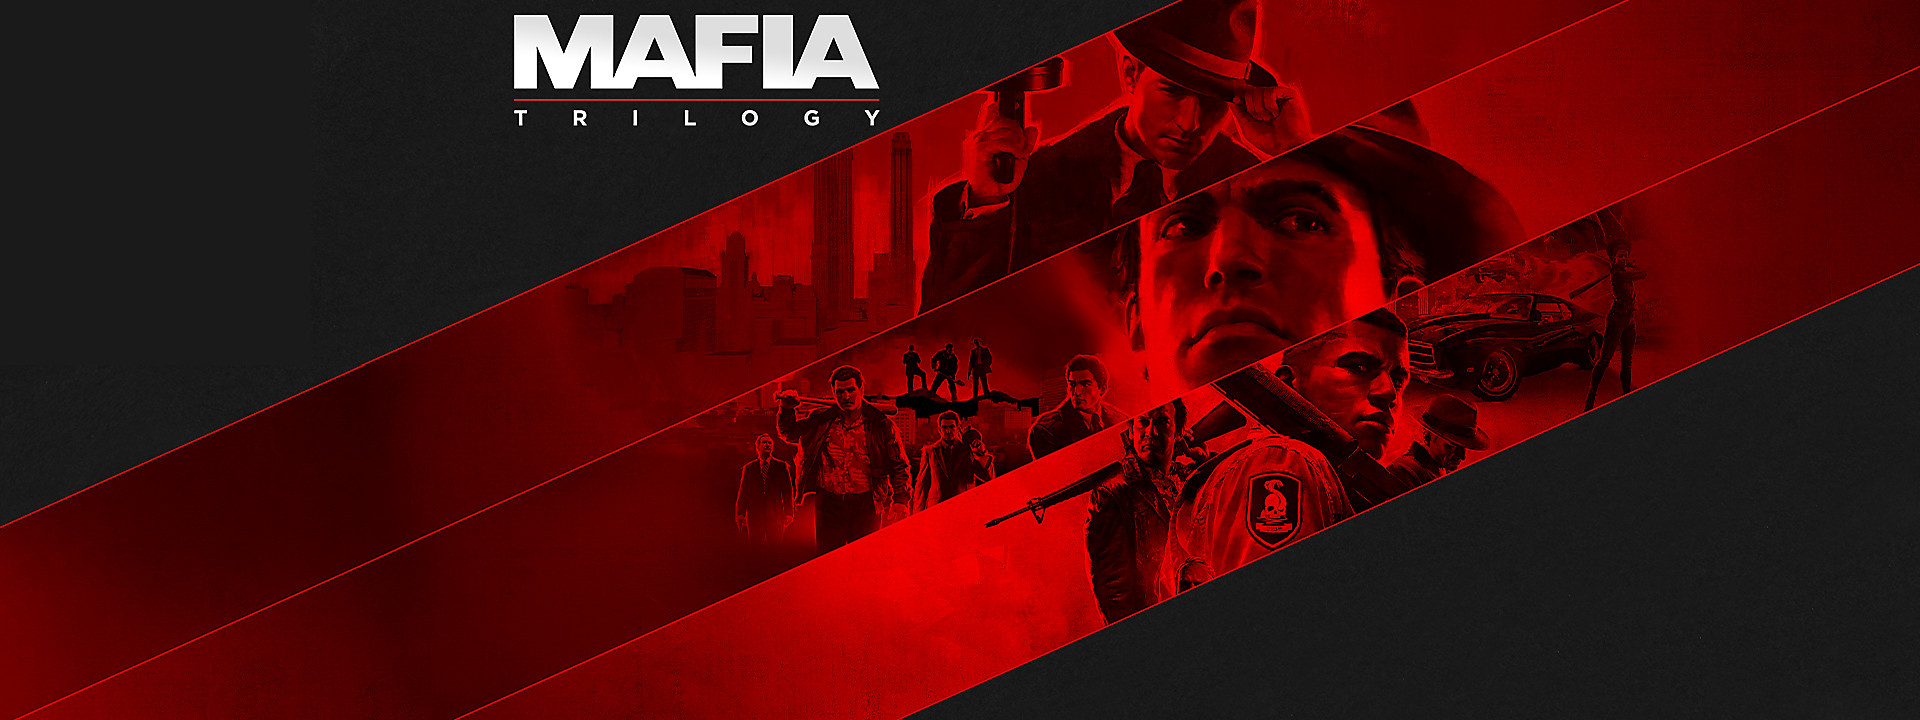 Mafia: Trilogy - Now Available